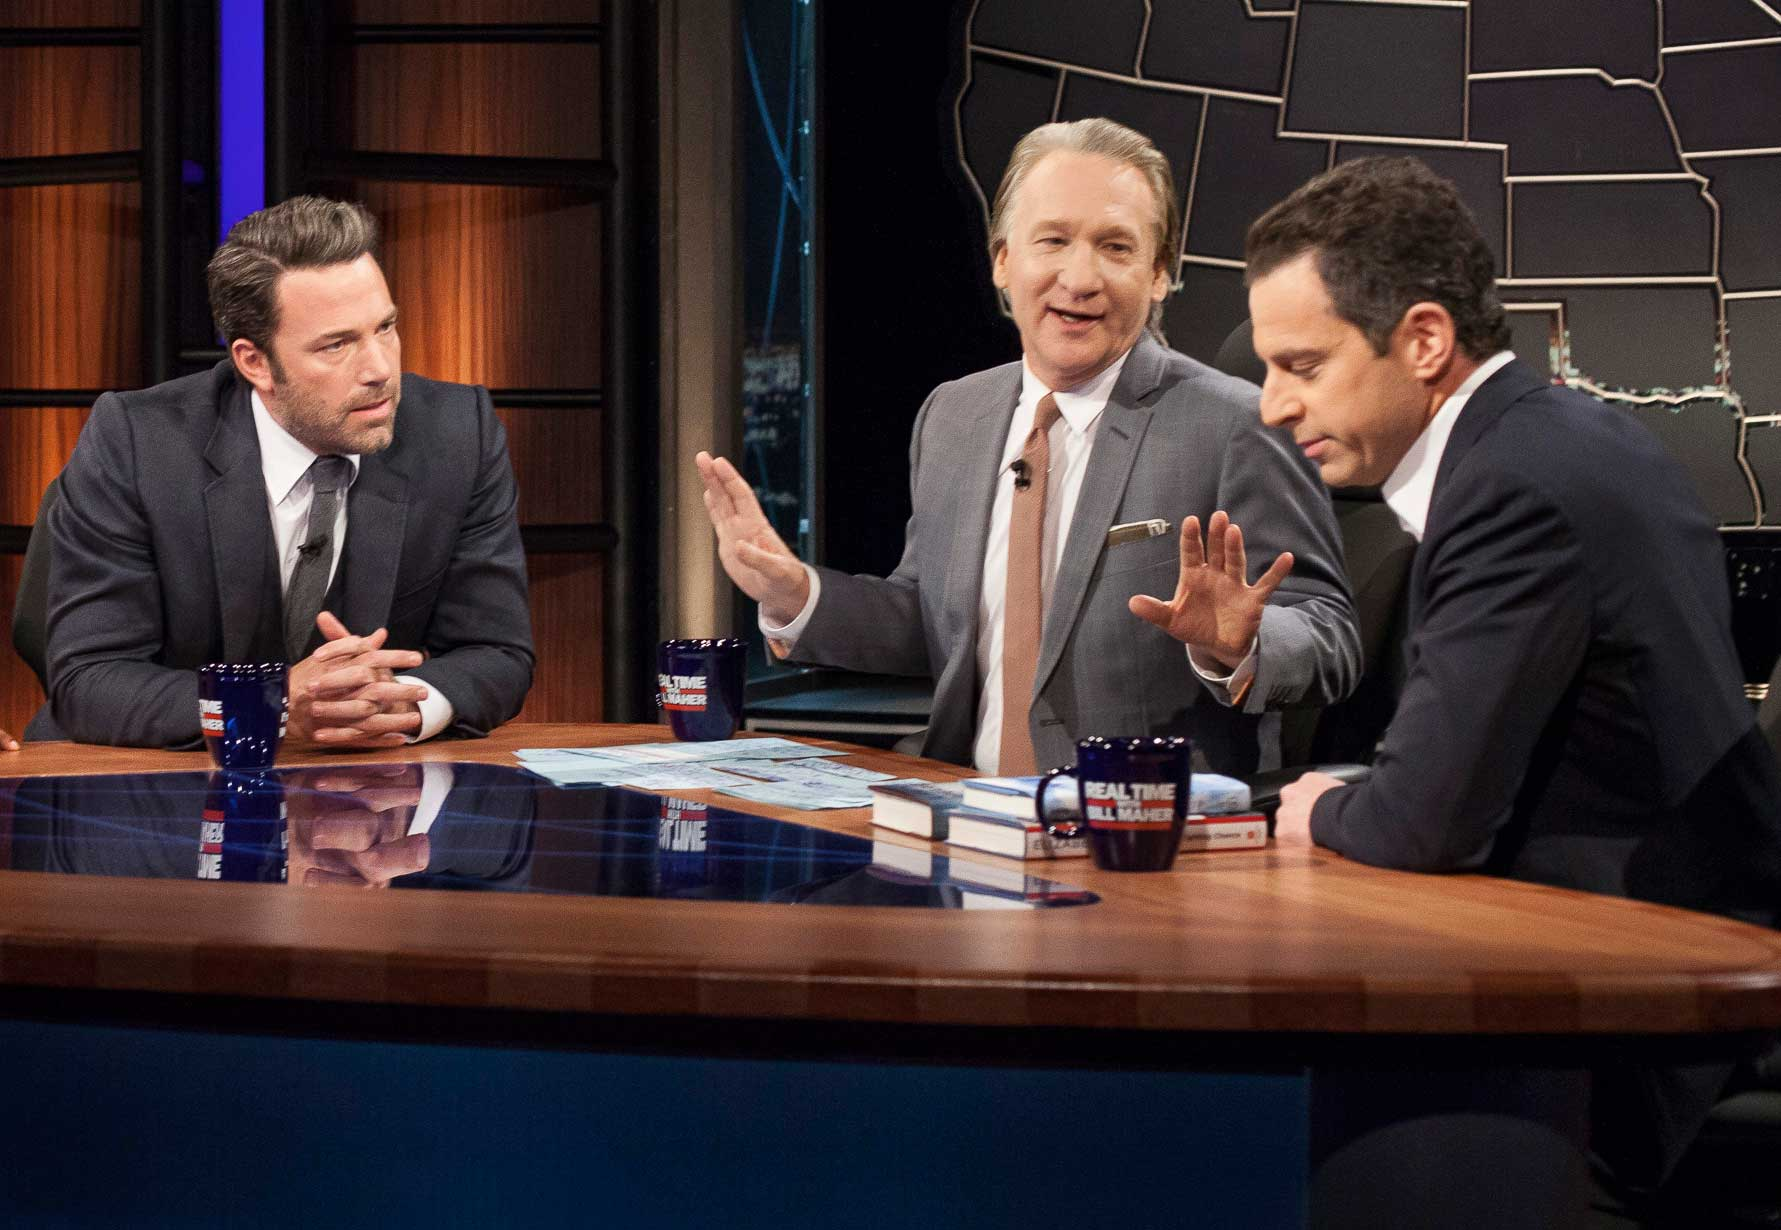 Host Bill Maher, center, talks with actor Ben Affleck, left, and Sam Harris, author of  Waking Up: A Guide to Spirituality Without Religion , during  Real Time With Bill Maher,  in Los Angeles on Oct. 3, 2014.